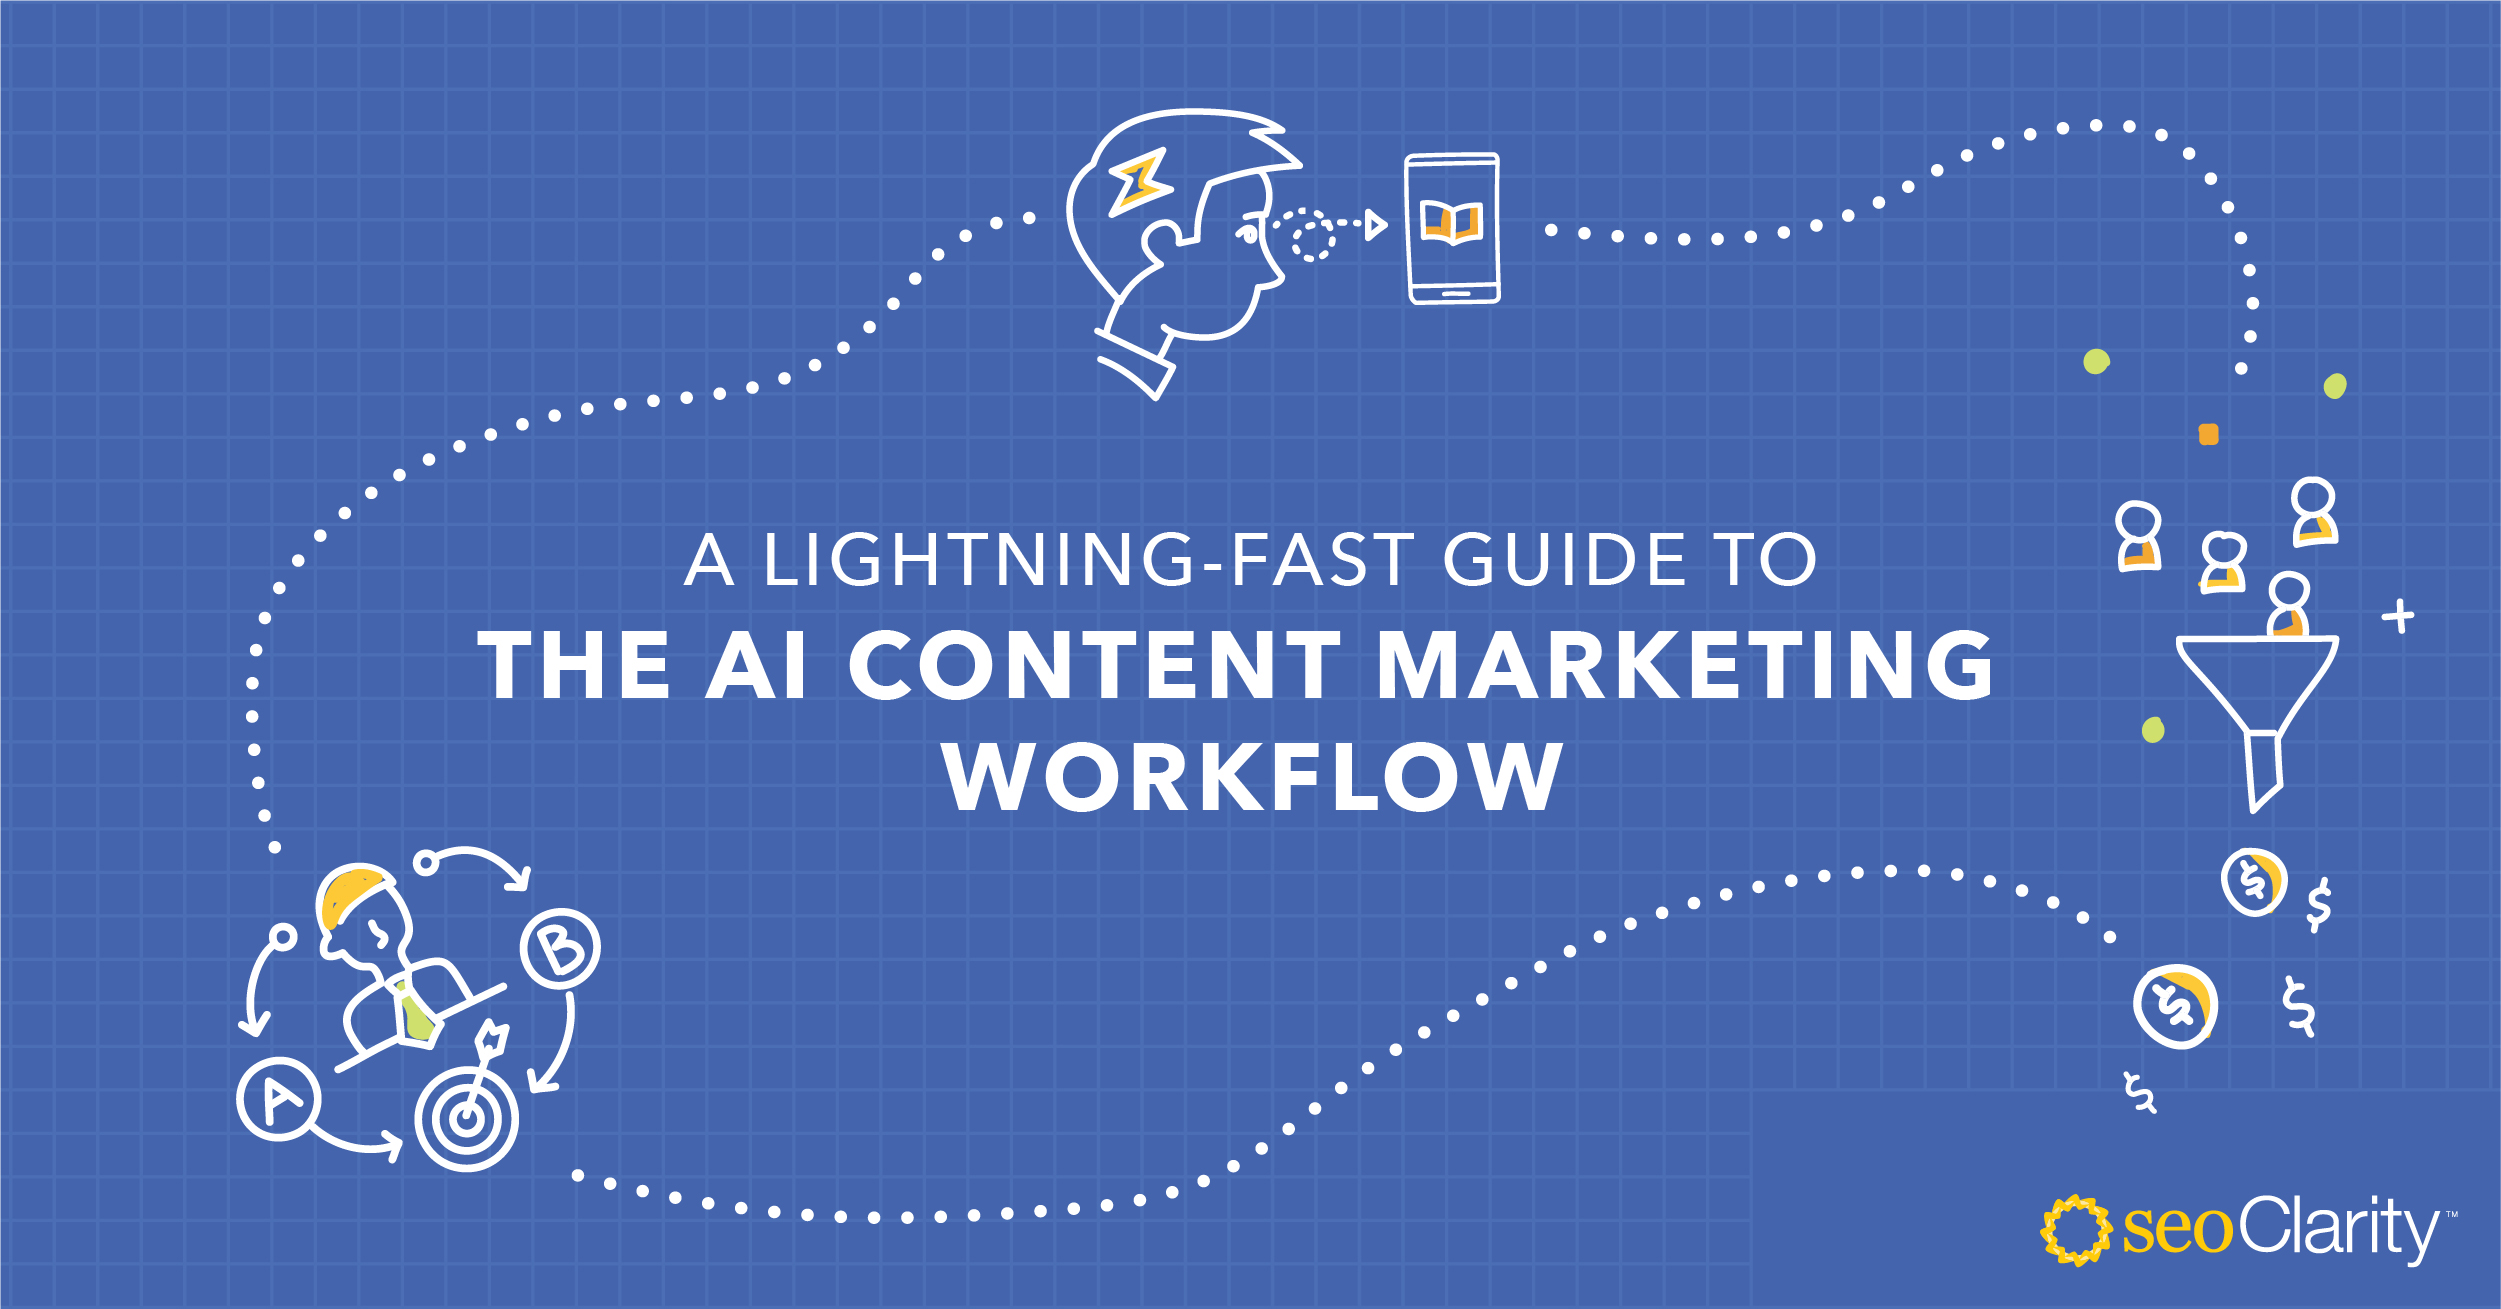 June Blueprint Images_v1.0_Content Marketing Workflow_BLOG